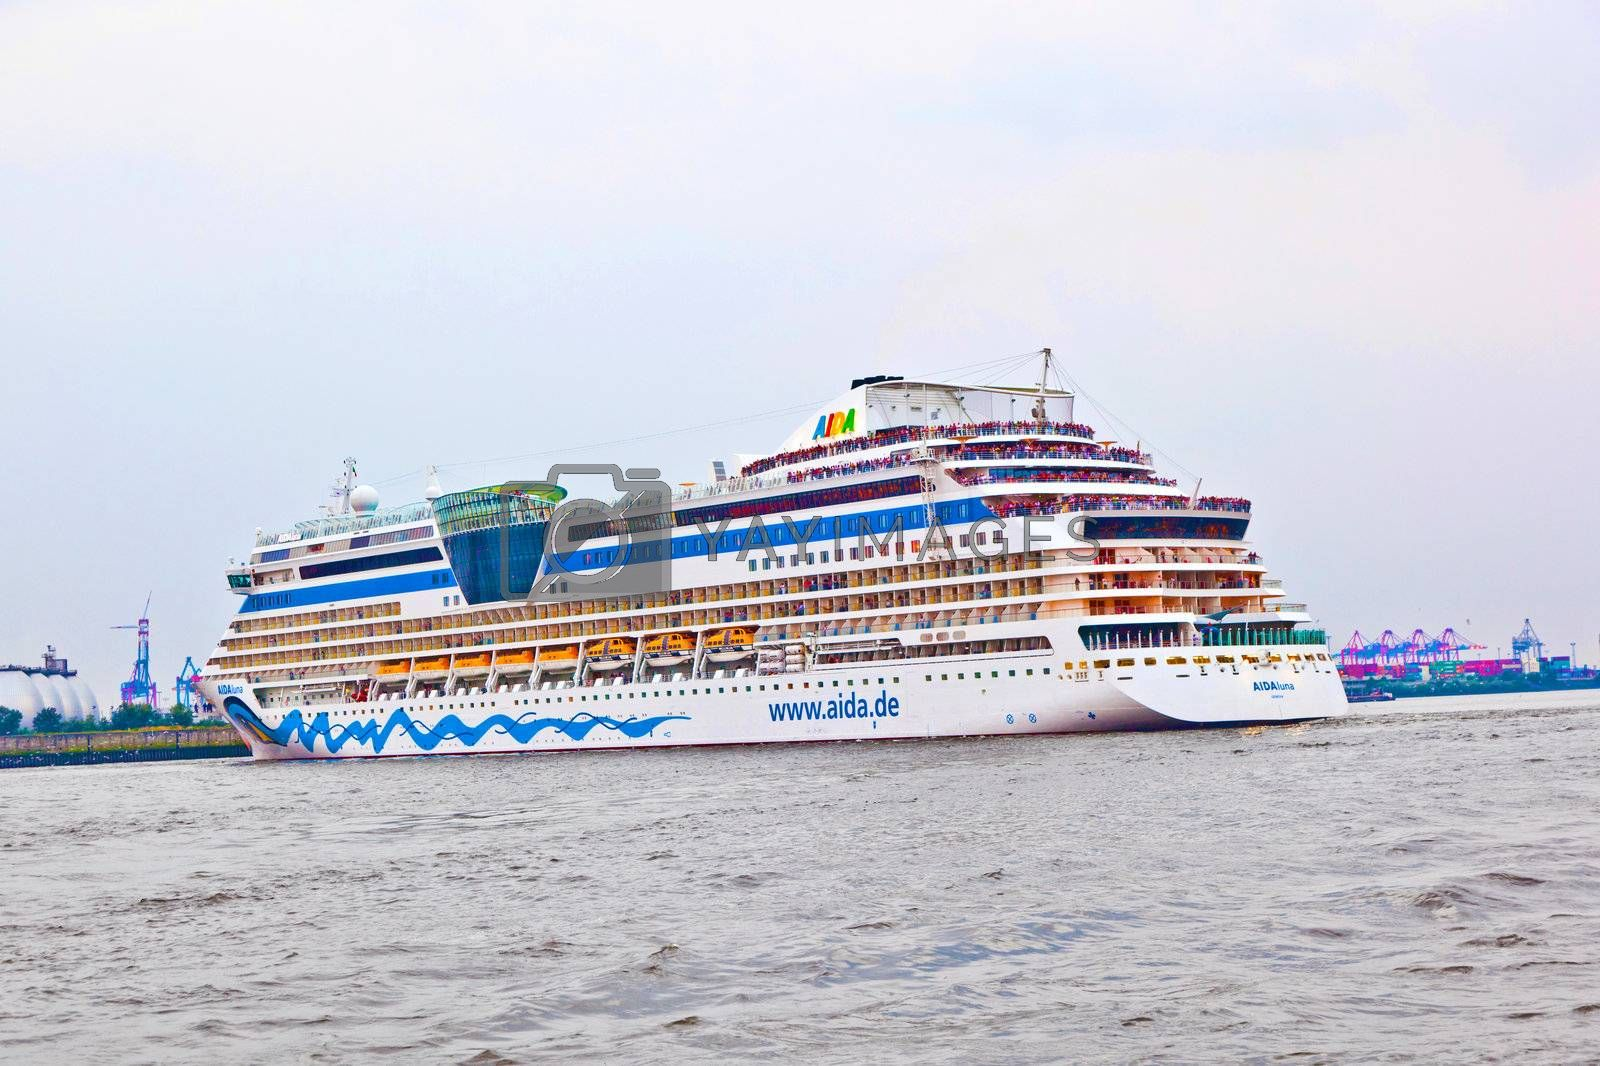 amous cruise liner AIDA leaves the harbor by meinzahn